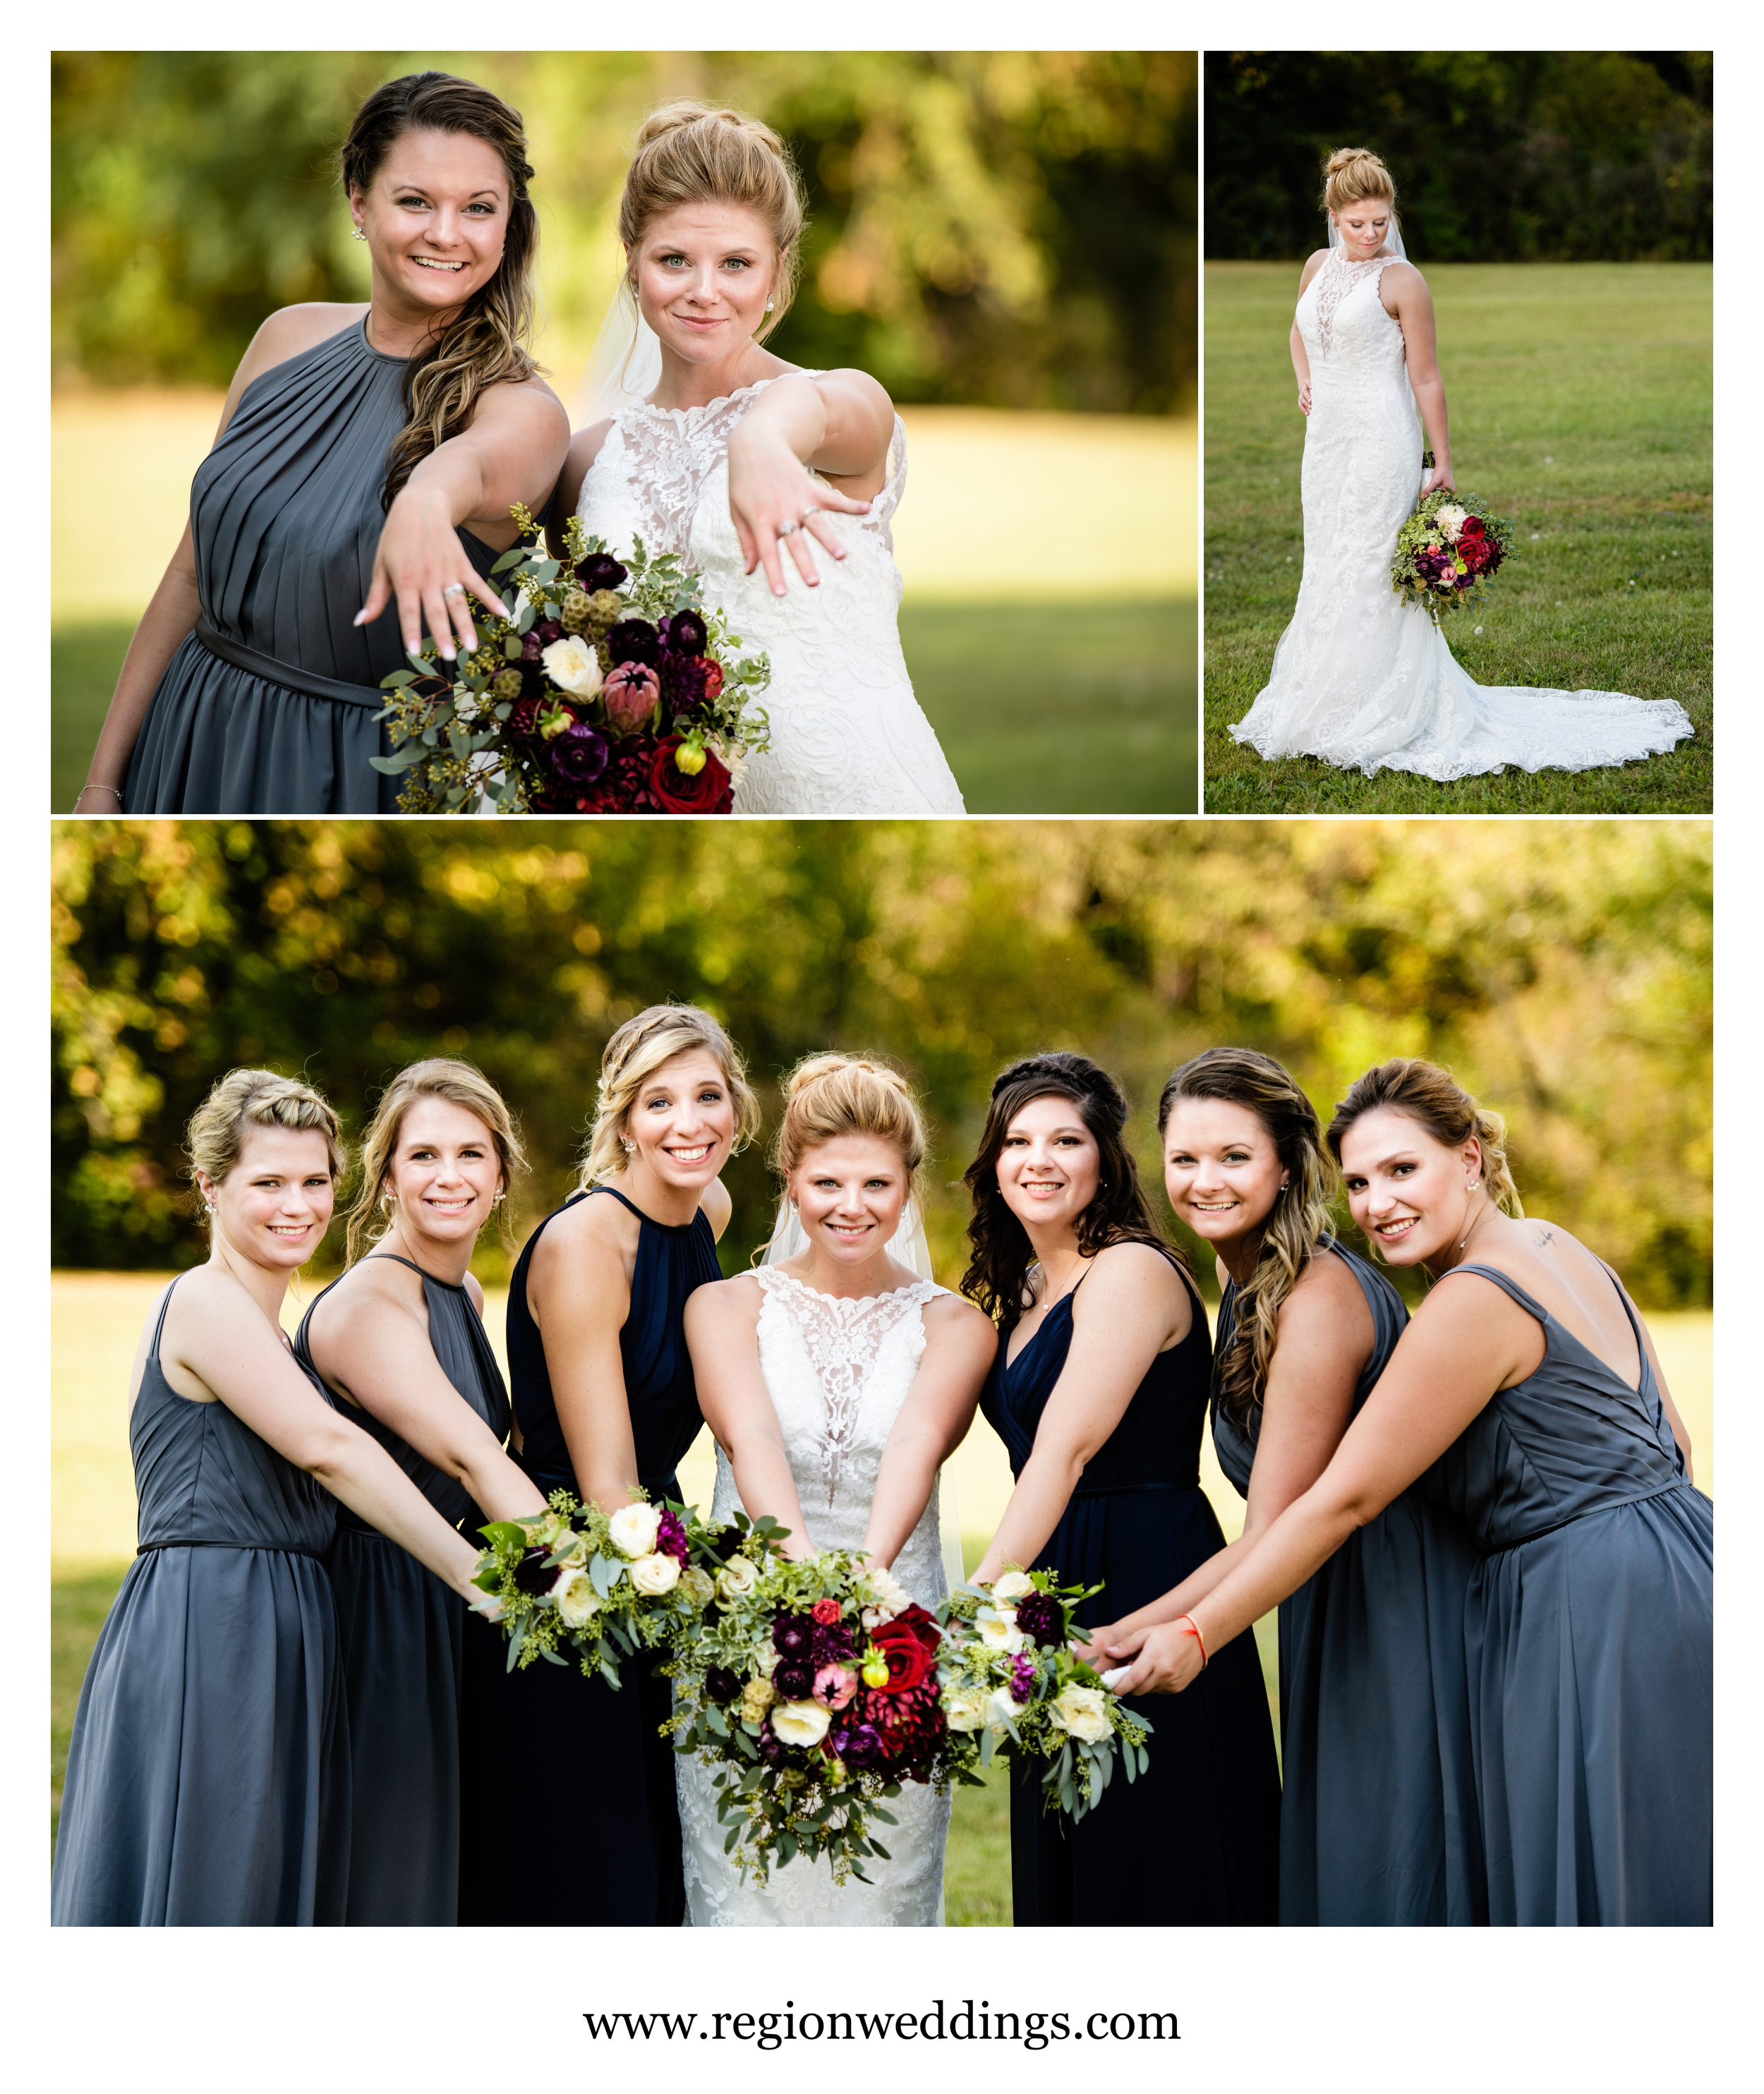 Bridesmaids in an Indiana field.